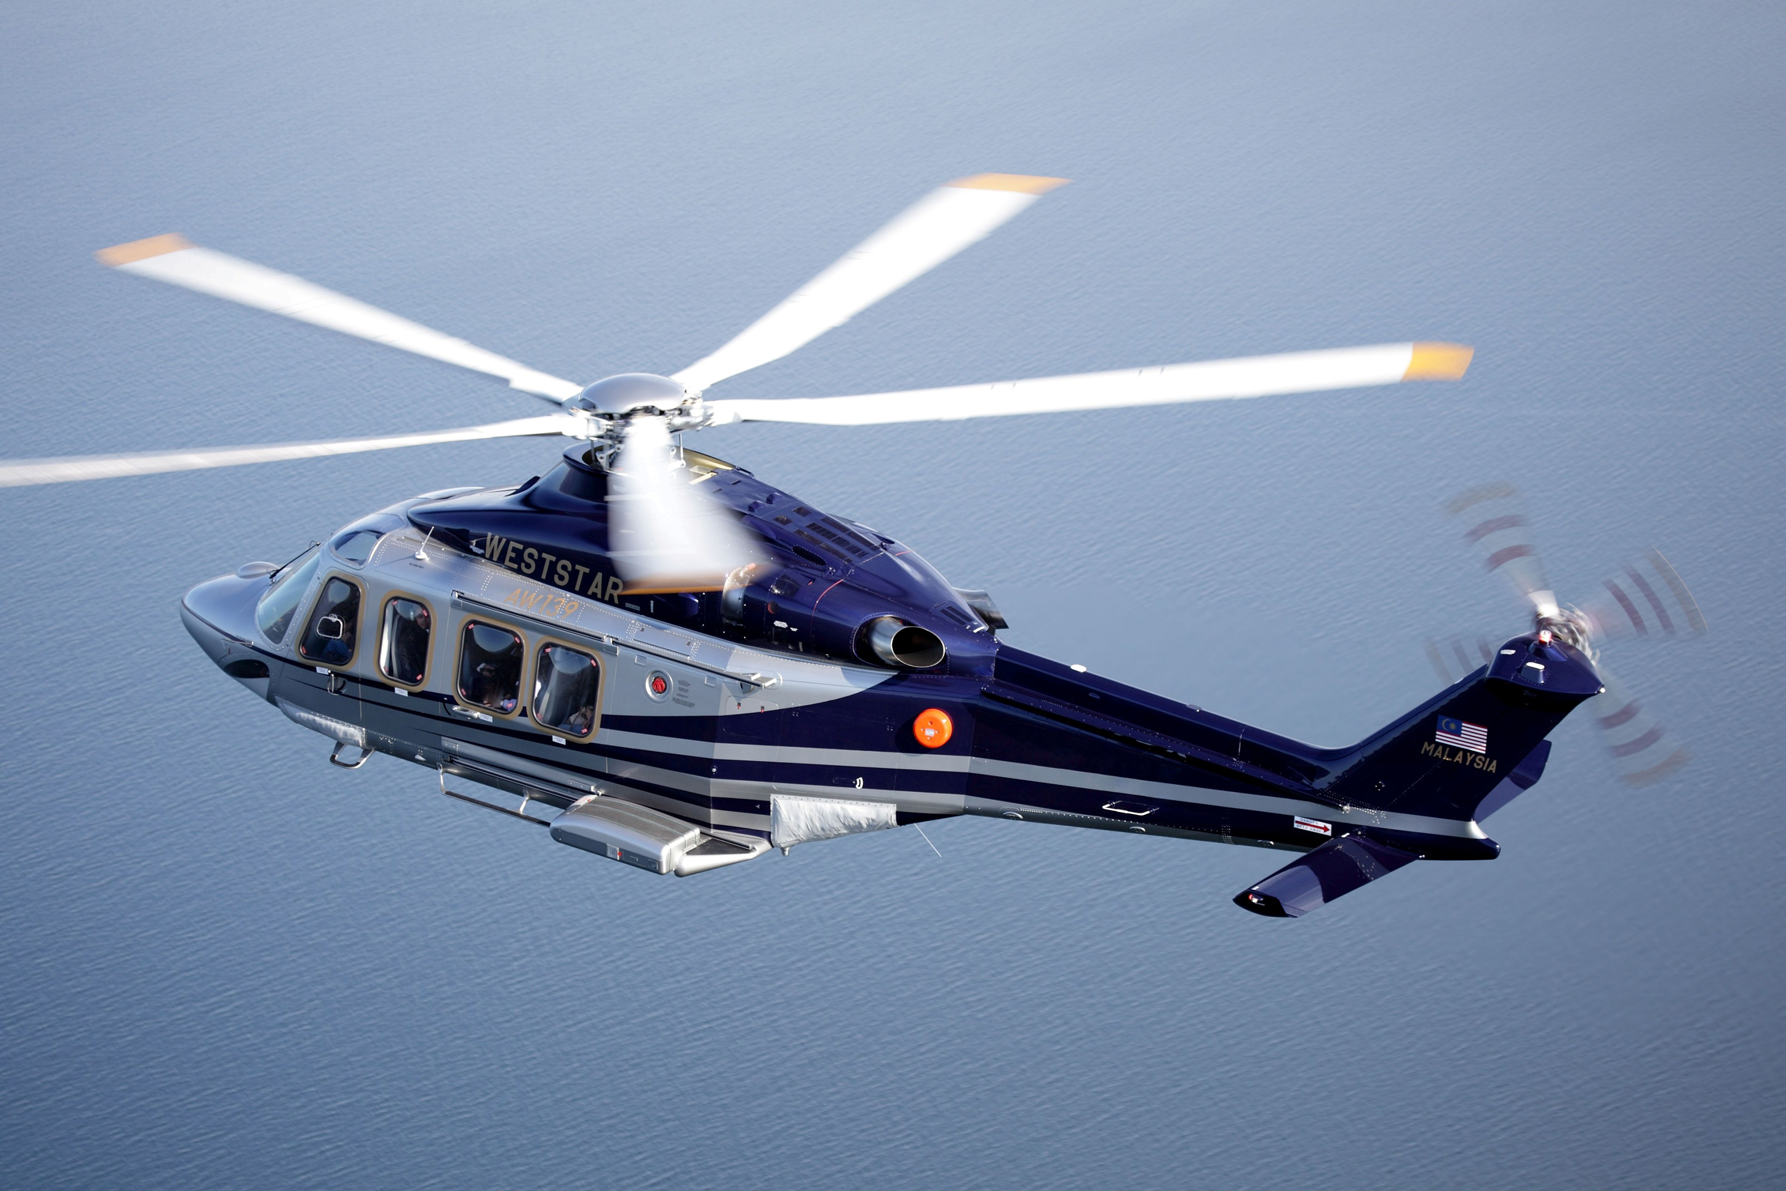 AgustaWestland signs large contract at LIMA